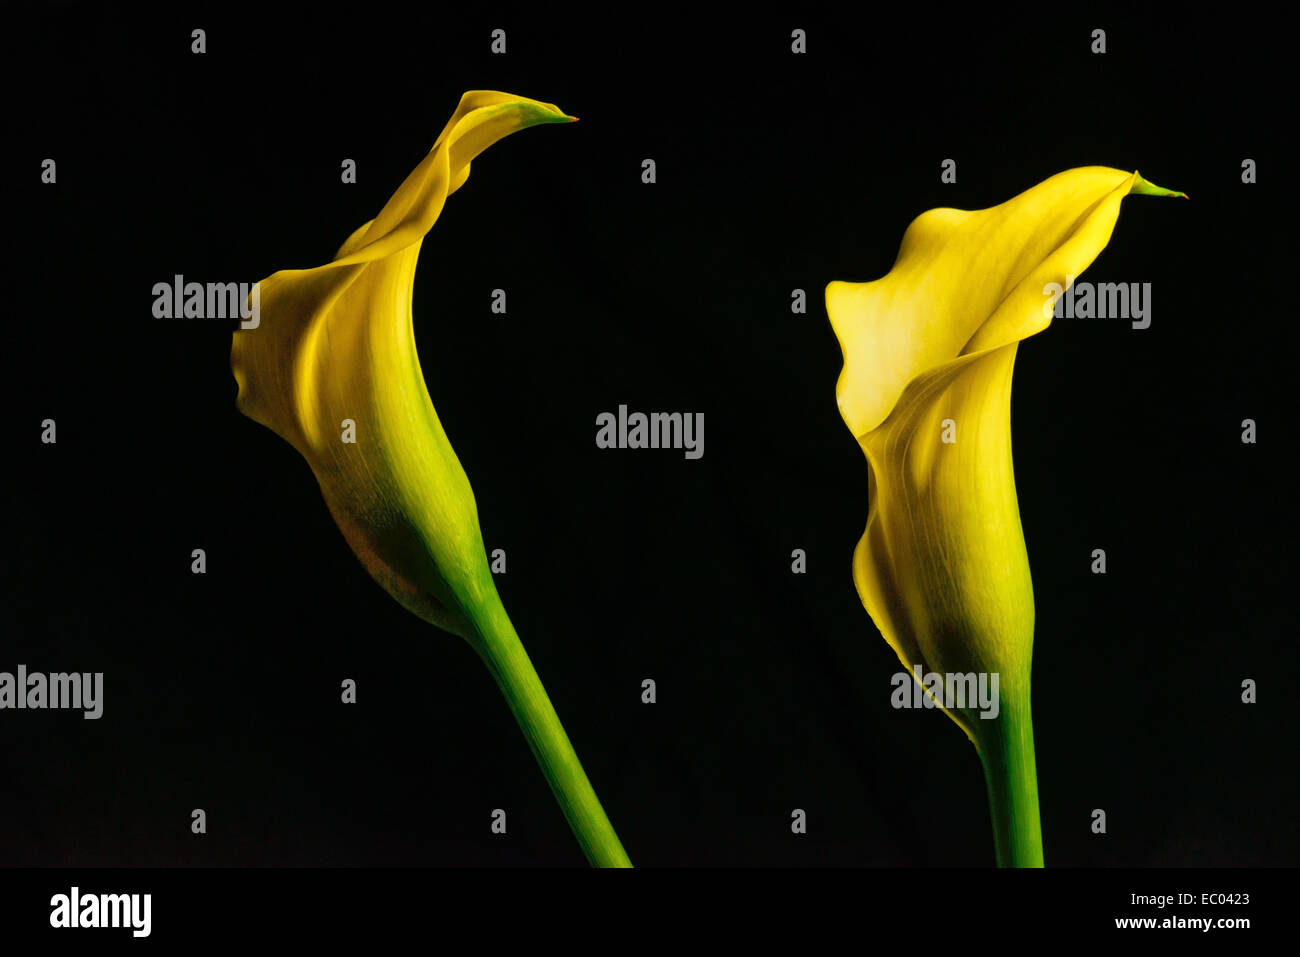 Yellow arum lily stock photos yellow arum lily stock images alamy two yellow calla lily zantedeschia aethiopica flowers against a black background also known izmirmasajfo